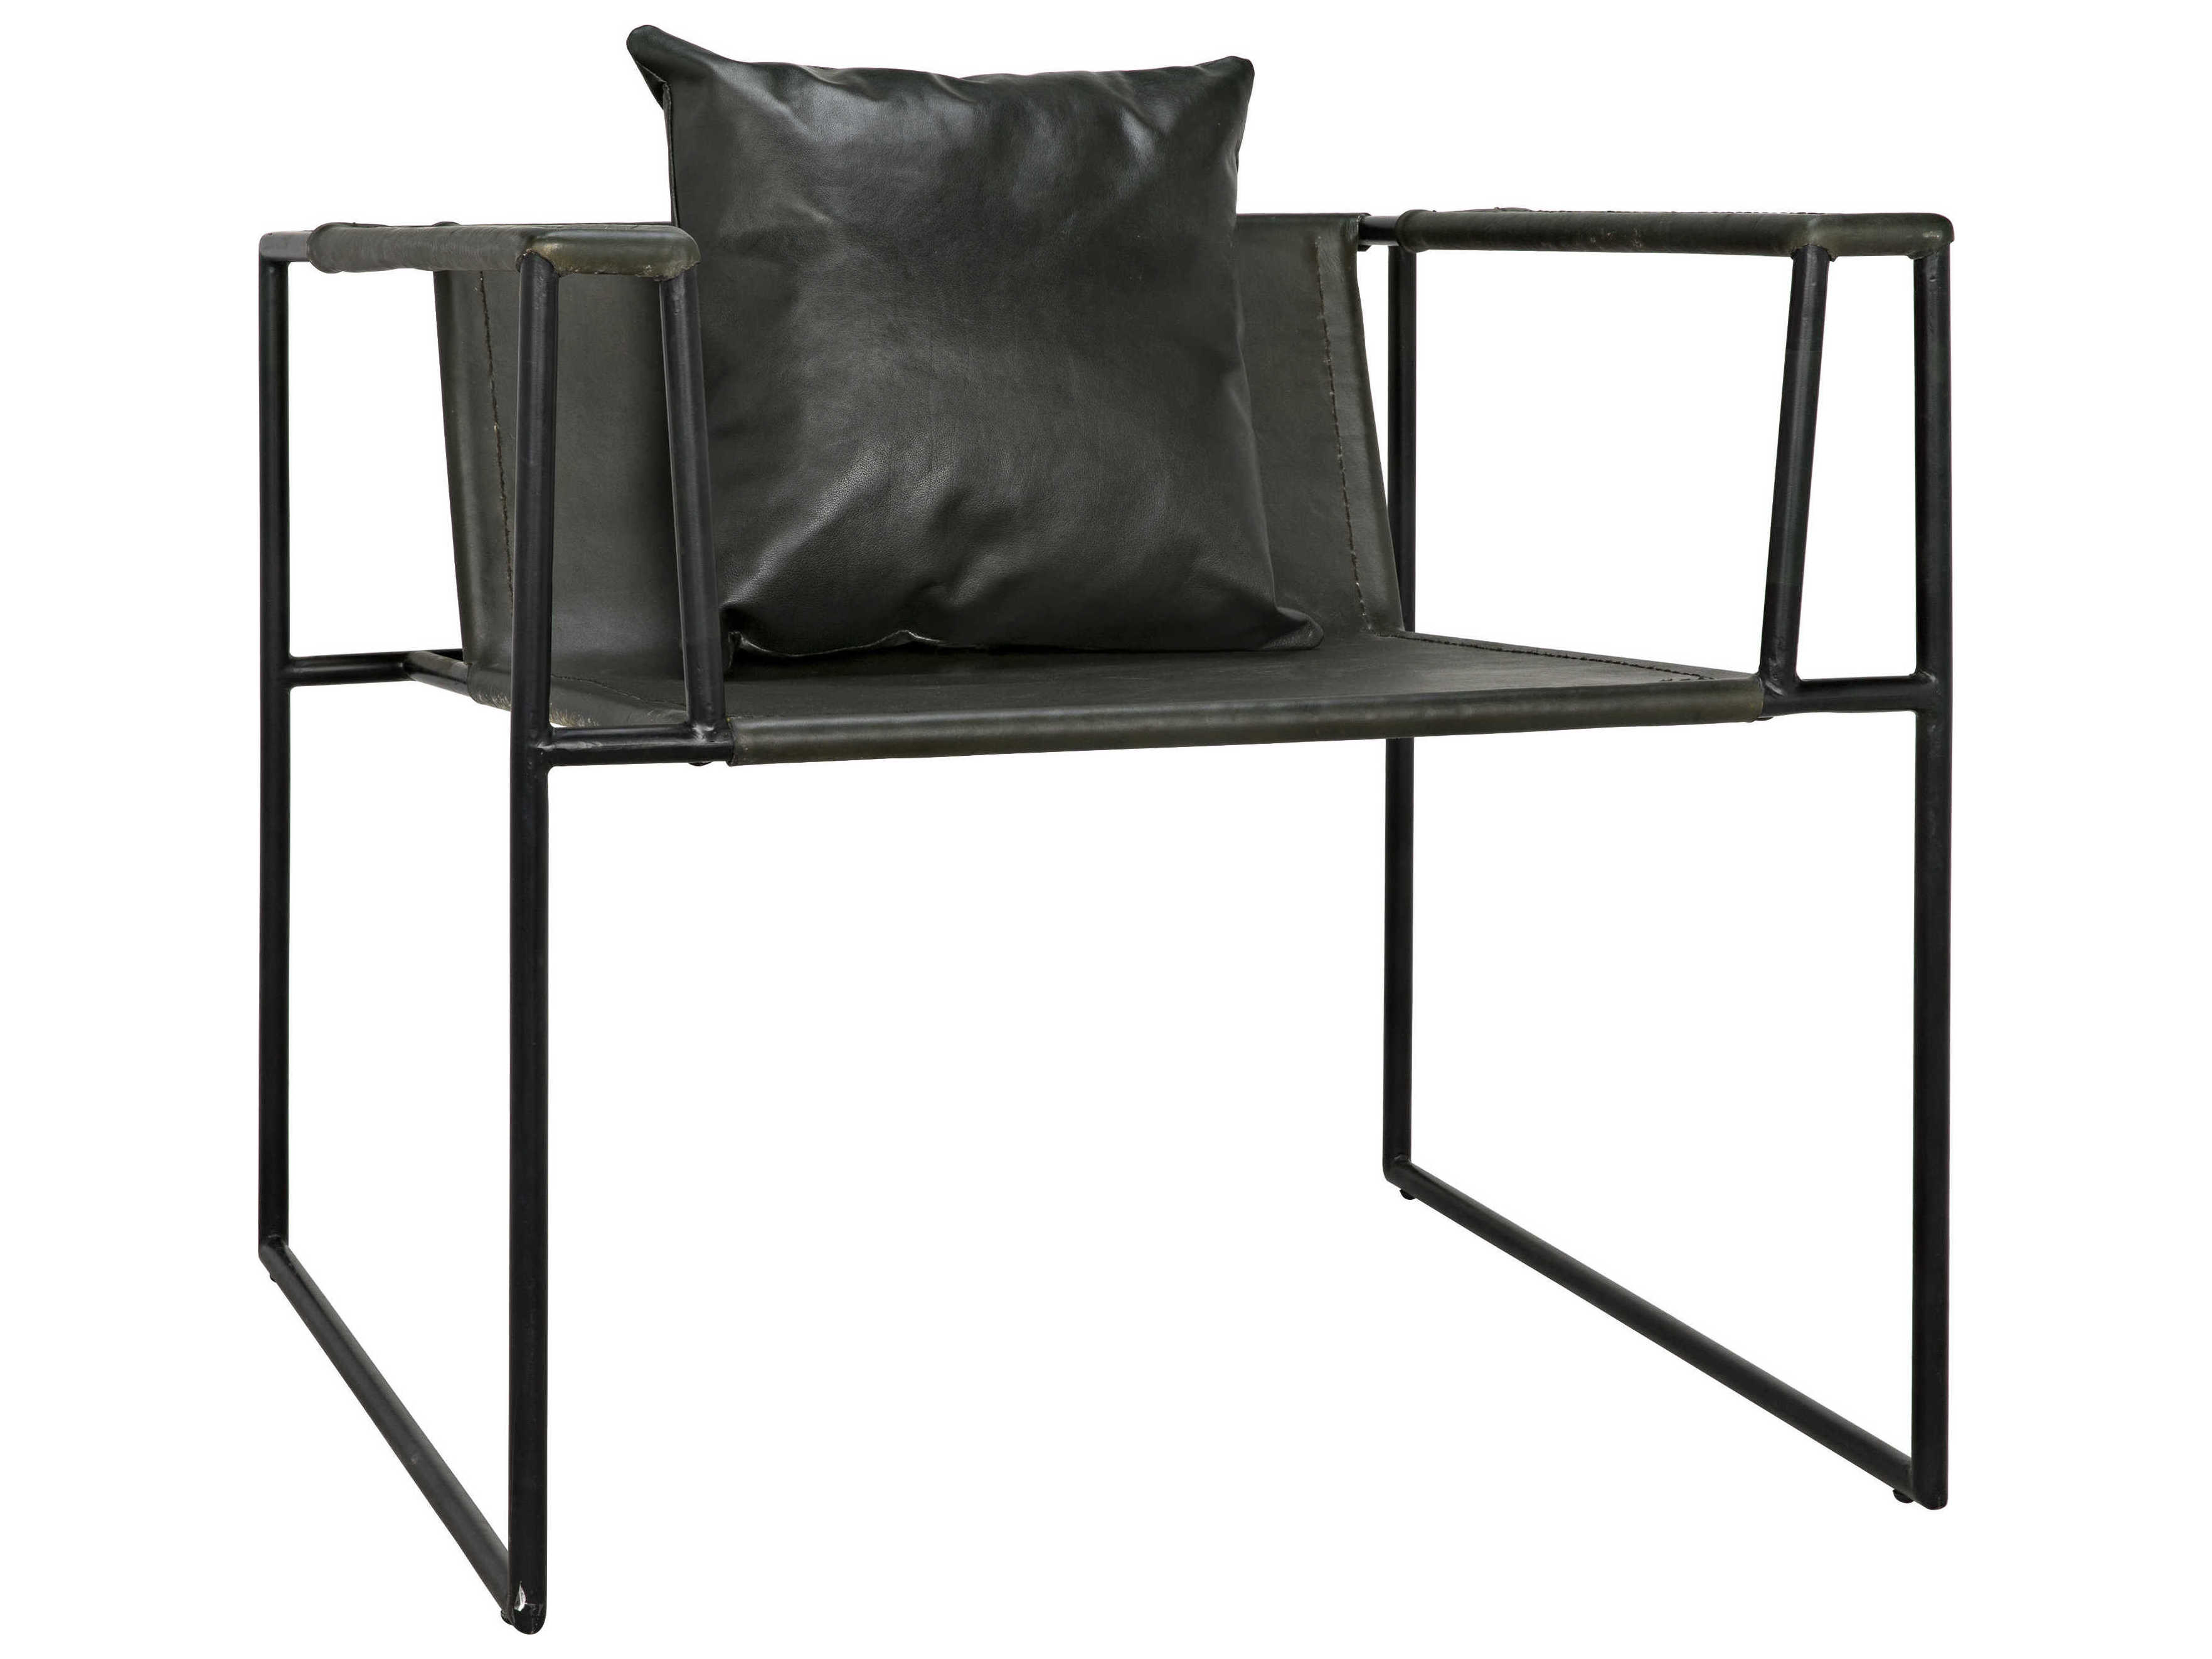 Wondrous Noir Furniture Reinhold Black Leather Accent Chair Ocoug Best Dining Table And Chair Ideas Images Ocougorg